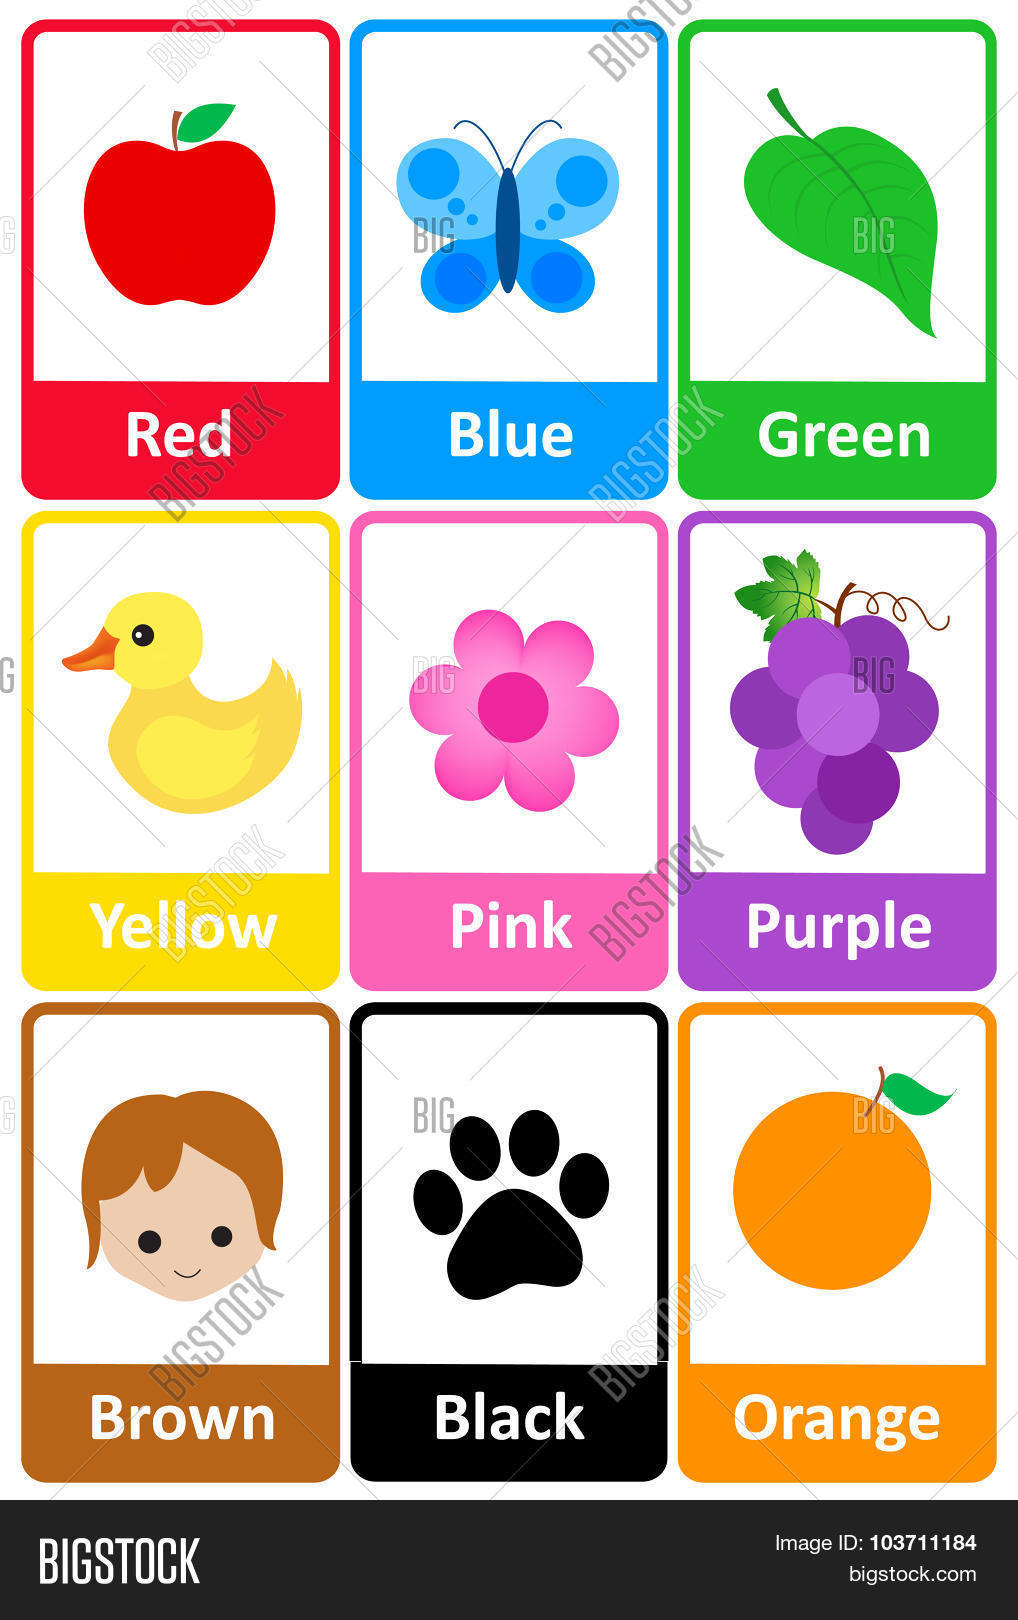 Truth Of The Talisman Colors Flashcards Free